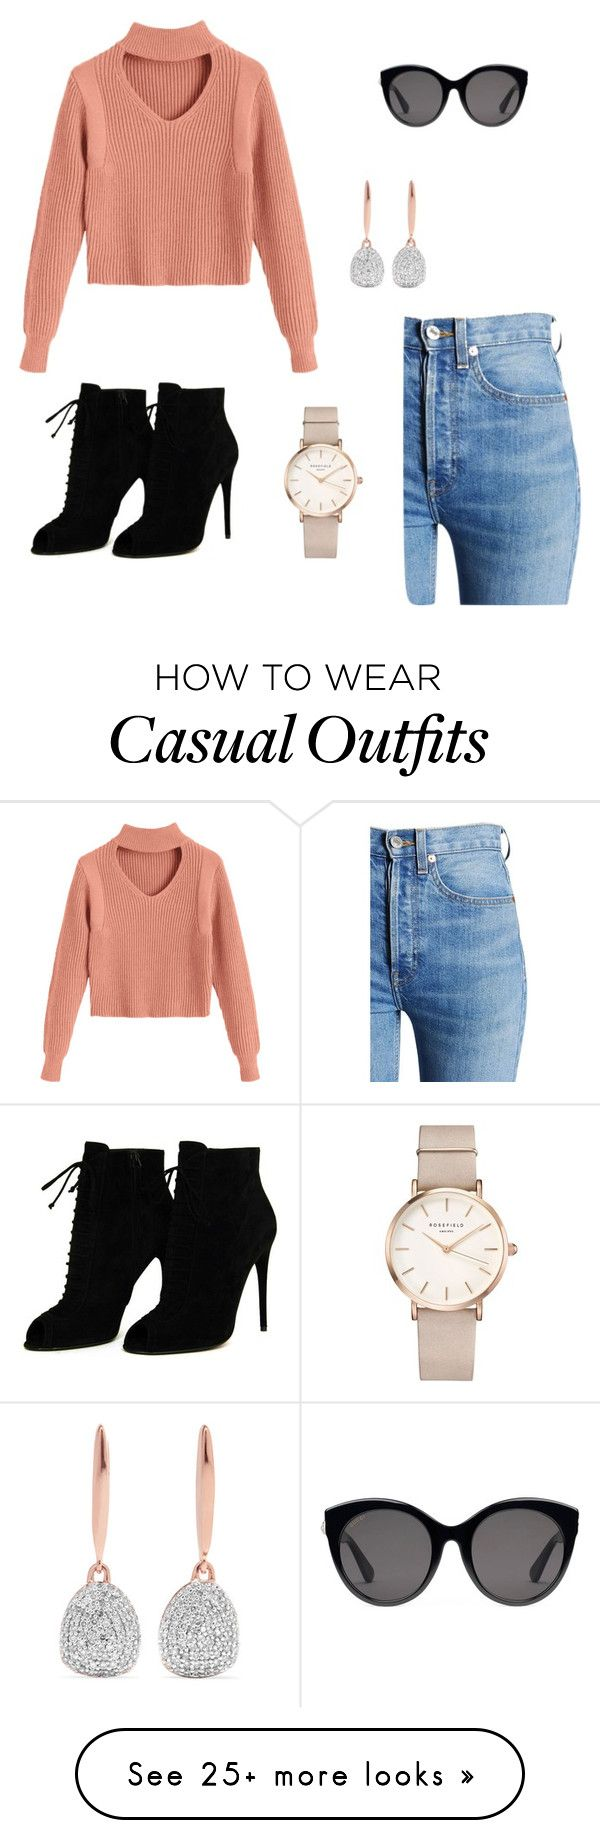 """Casual Chic"" by lgrand22 on Polyvore featuring RE/DONE, Gucci, ROSEFIELD, Monica Vinader and Tom Ford"